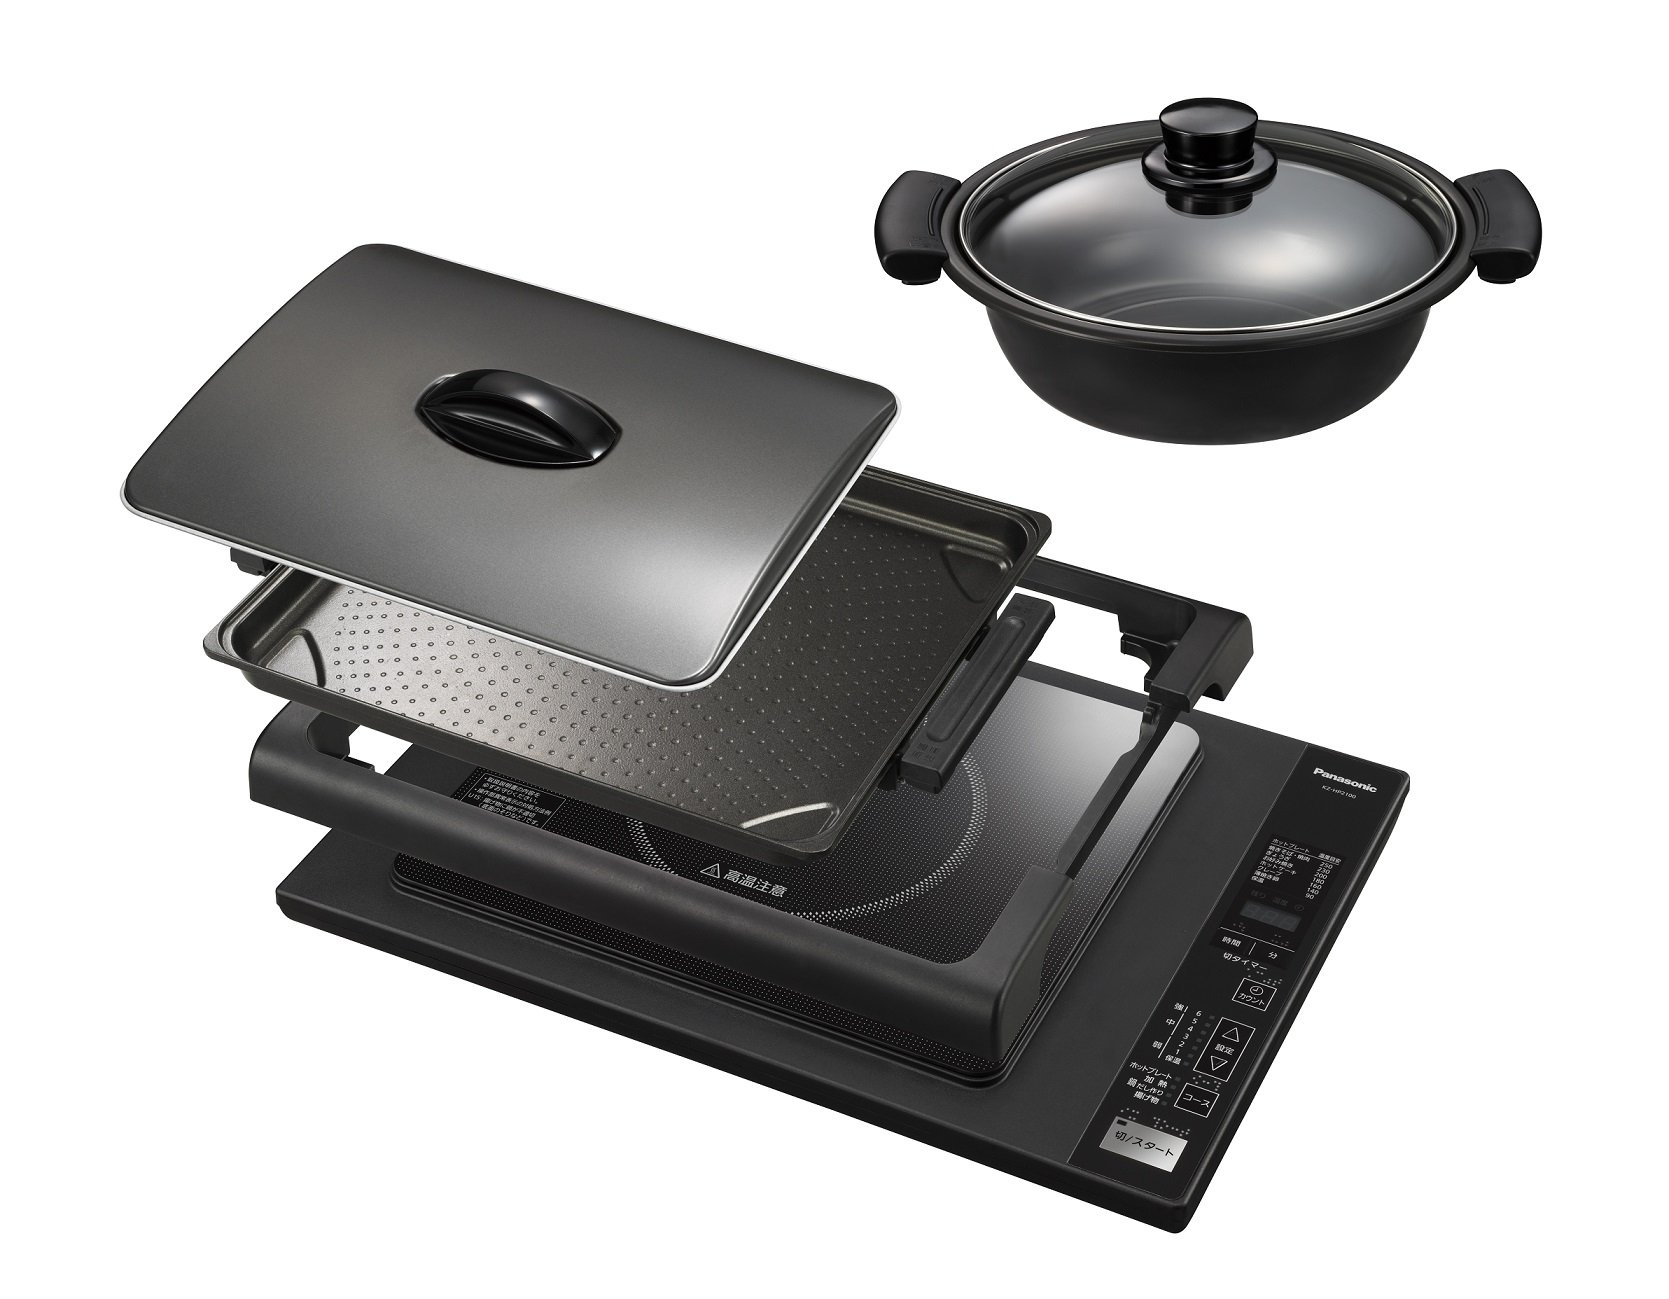 Panasonic IH hot plate black KZ-HP2100-K